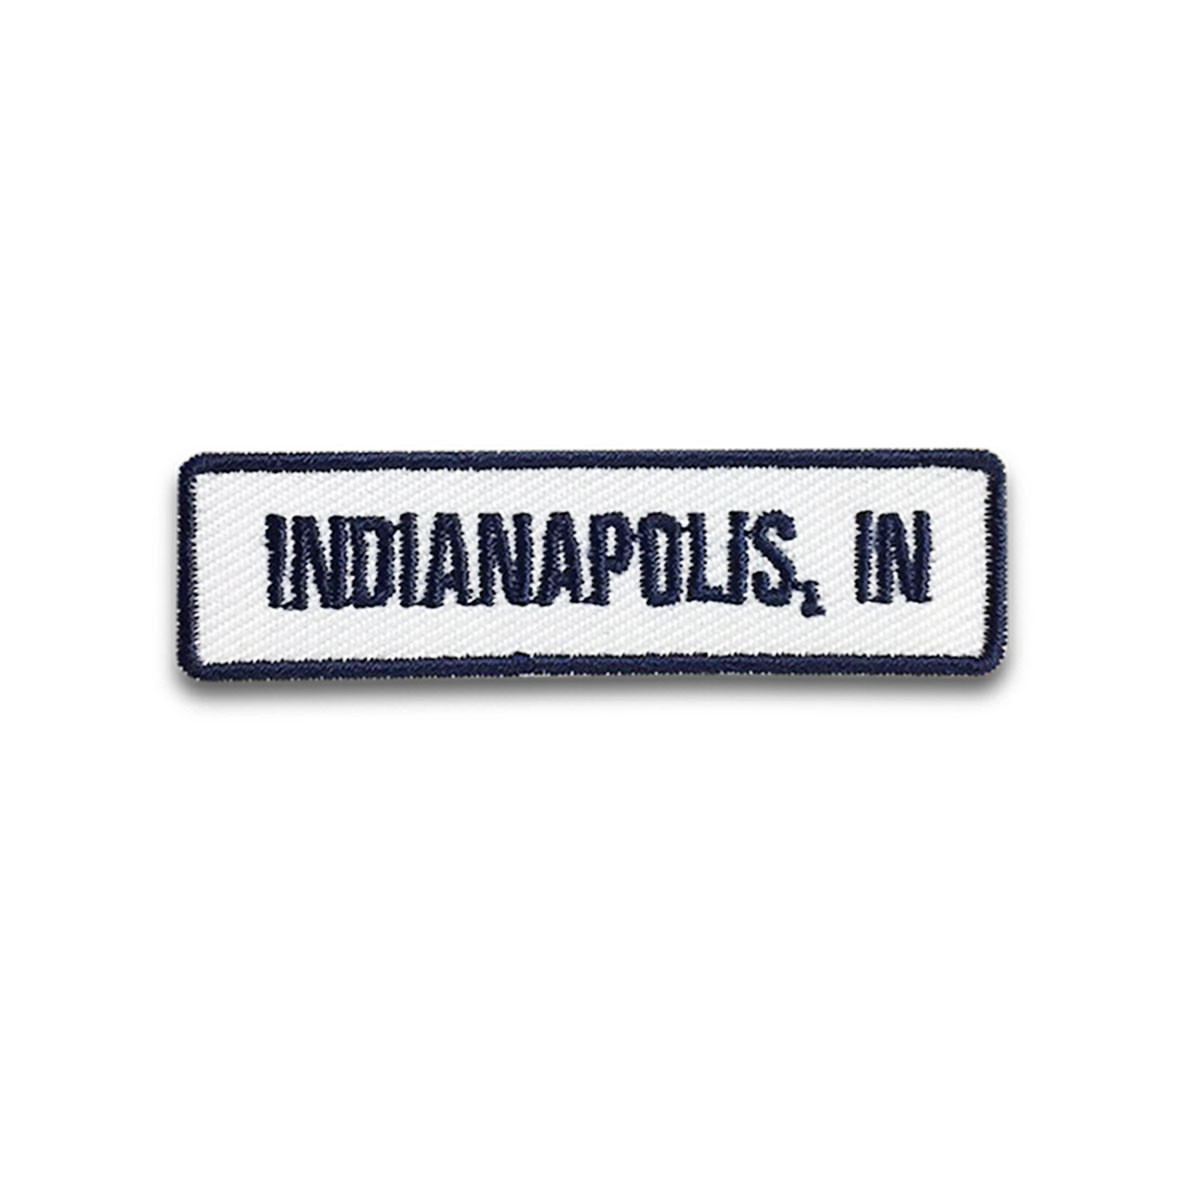 Indianapolis, IN Rocker Patch